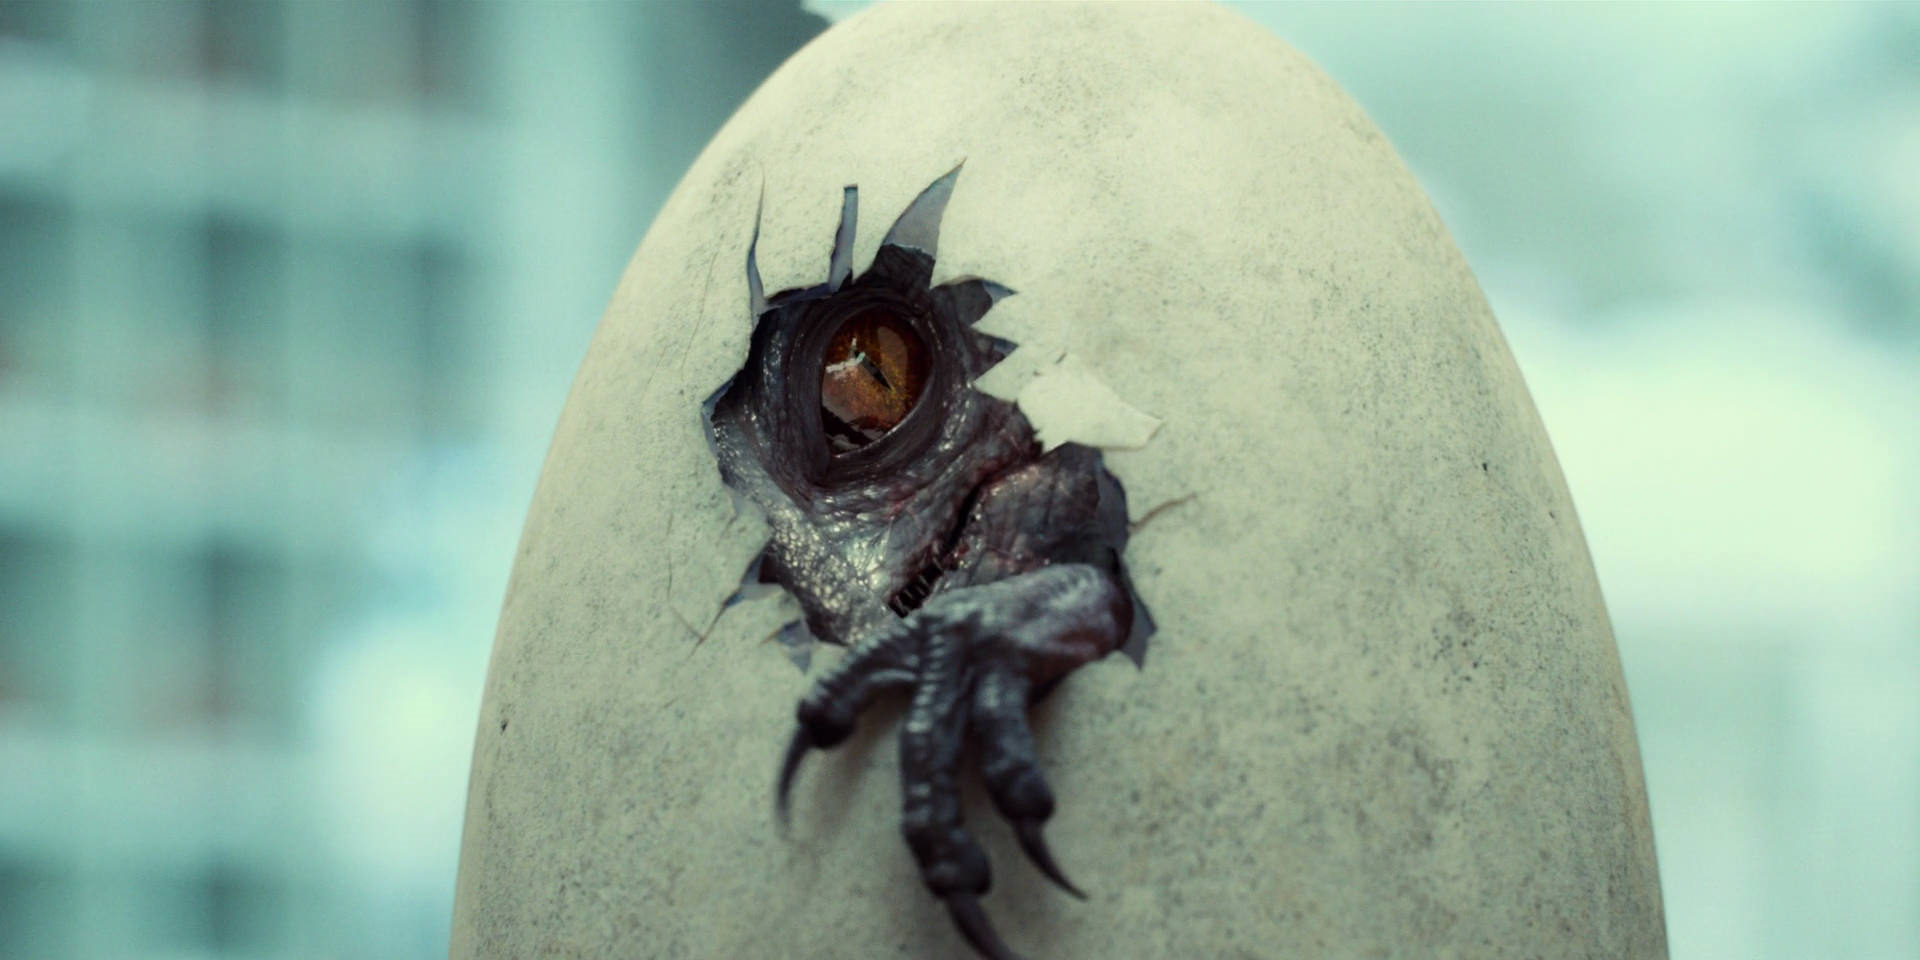 Creepy-new-jurassic-world-tv-spot-teases-the-indominus-rex-hatching